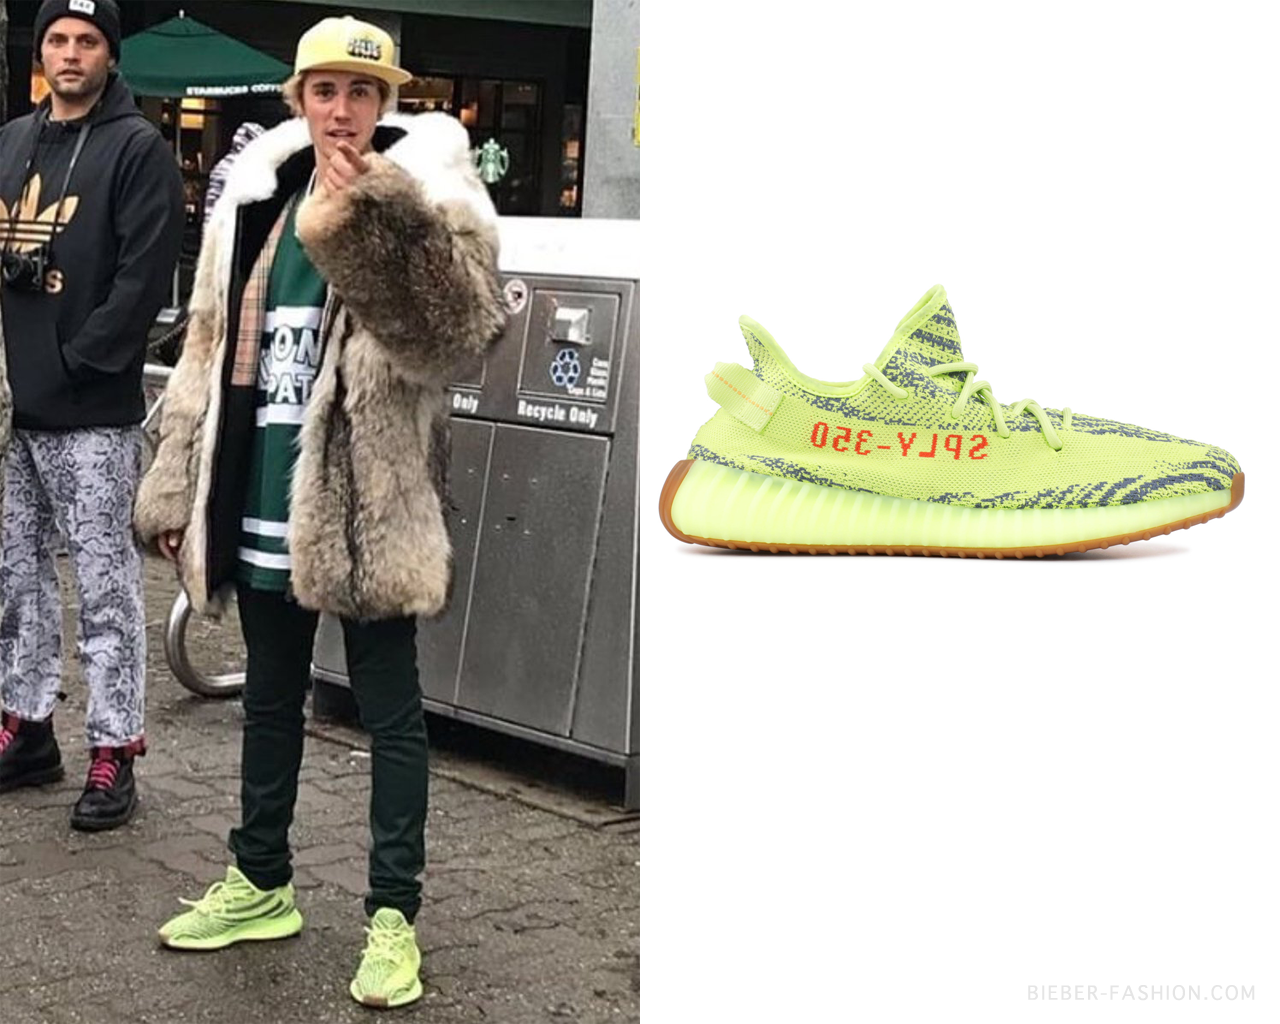 bieber,fashion \u201cAdidas Yeezy Boost 350 V2 in Semi Frozen Yellow , Not  Available \u201d